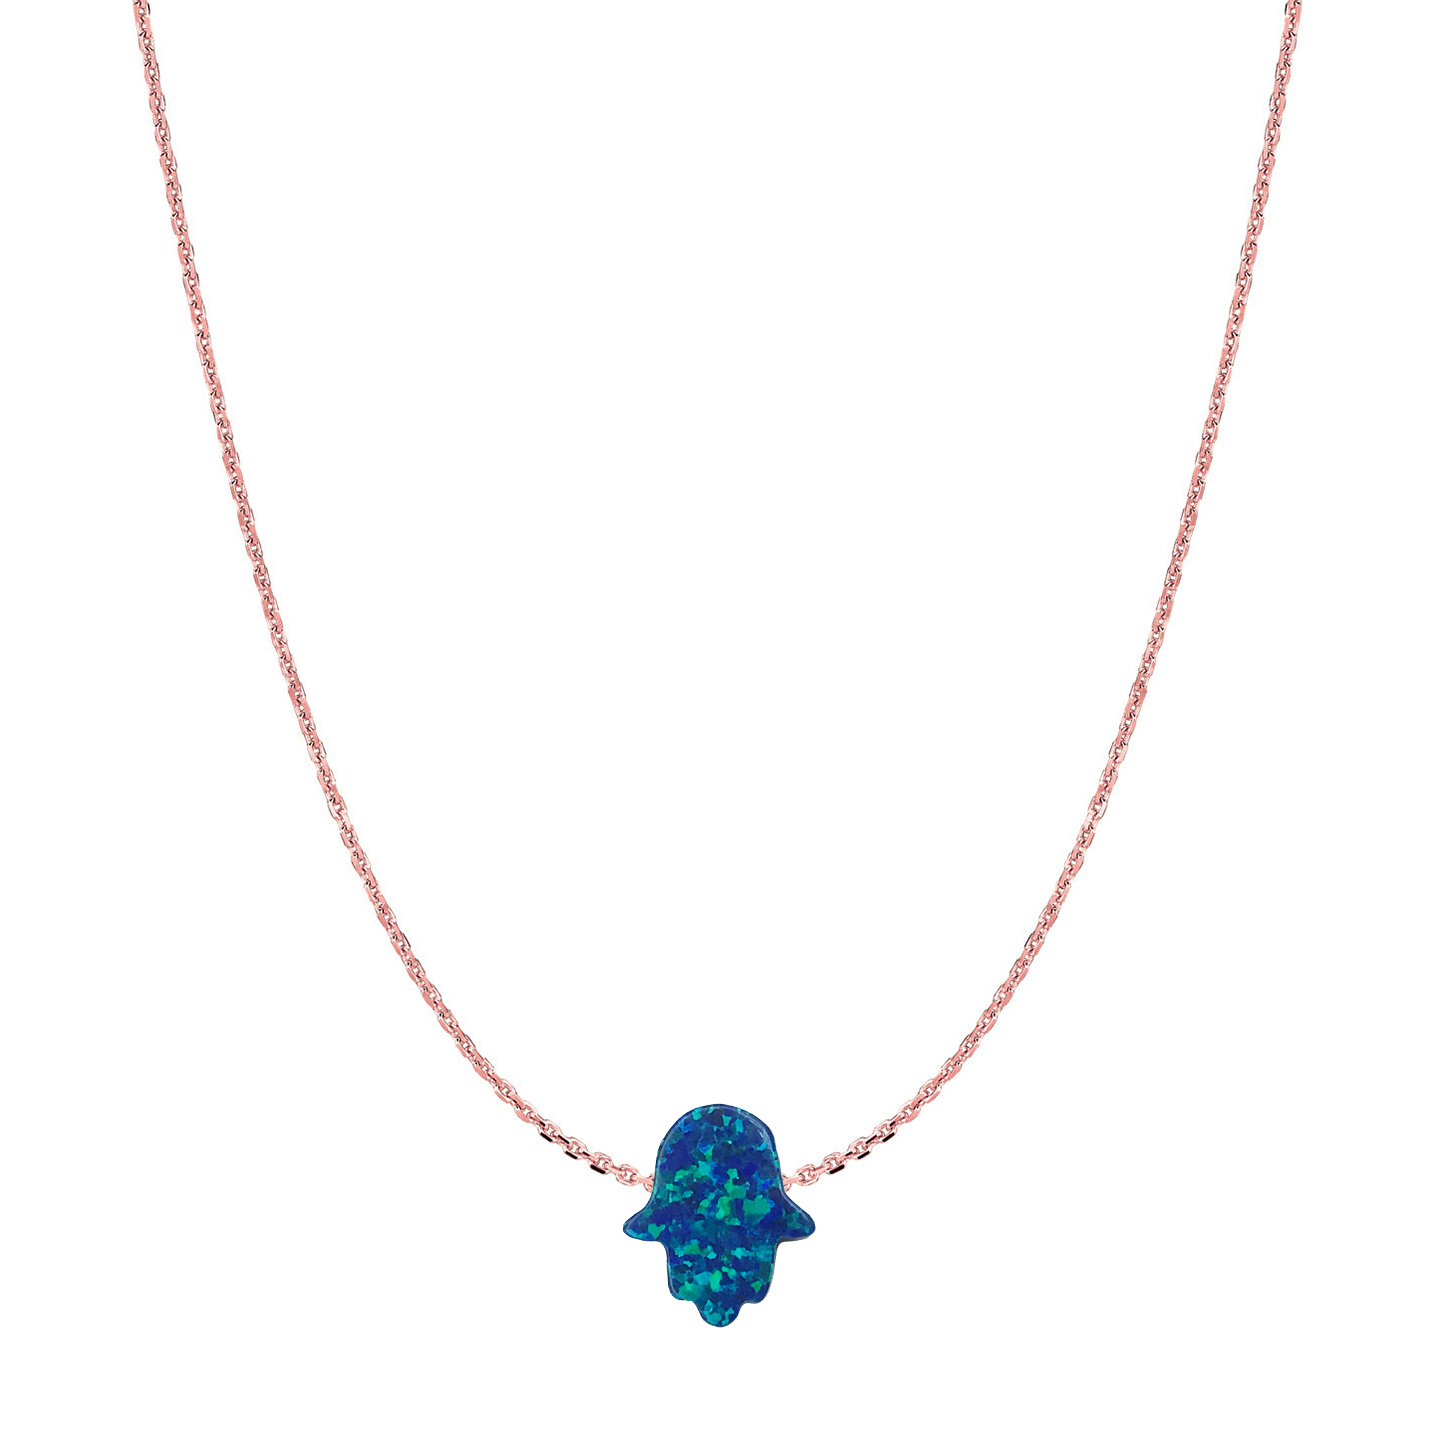 14 Karat Gold Ocean Blue Opal Hamsa Necklace